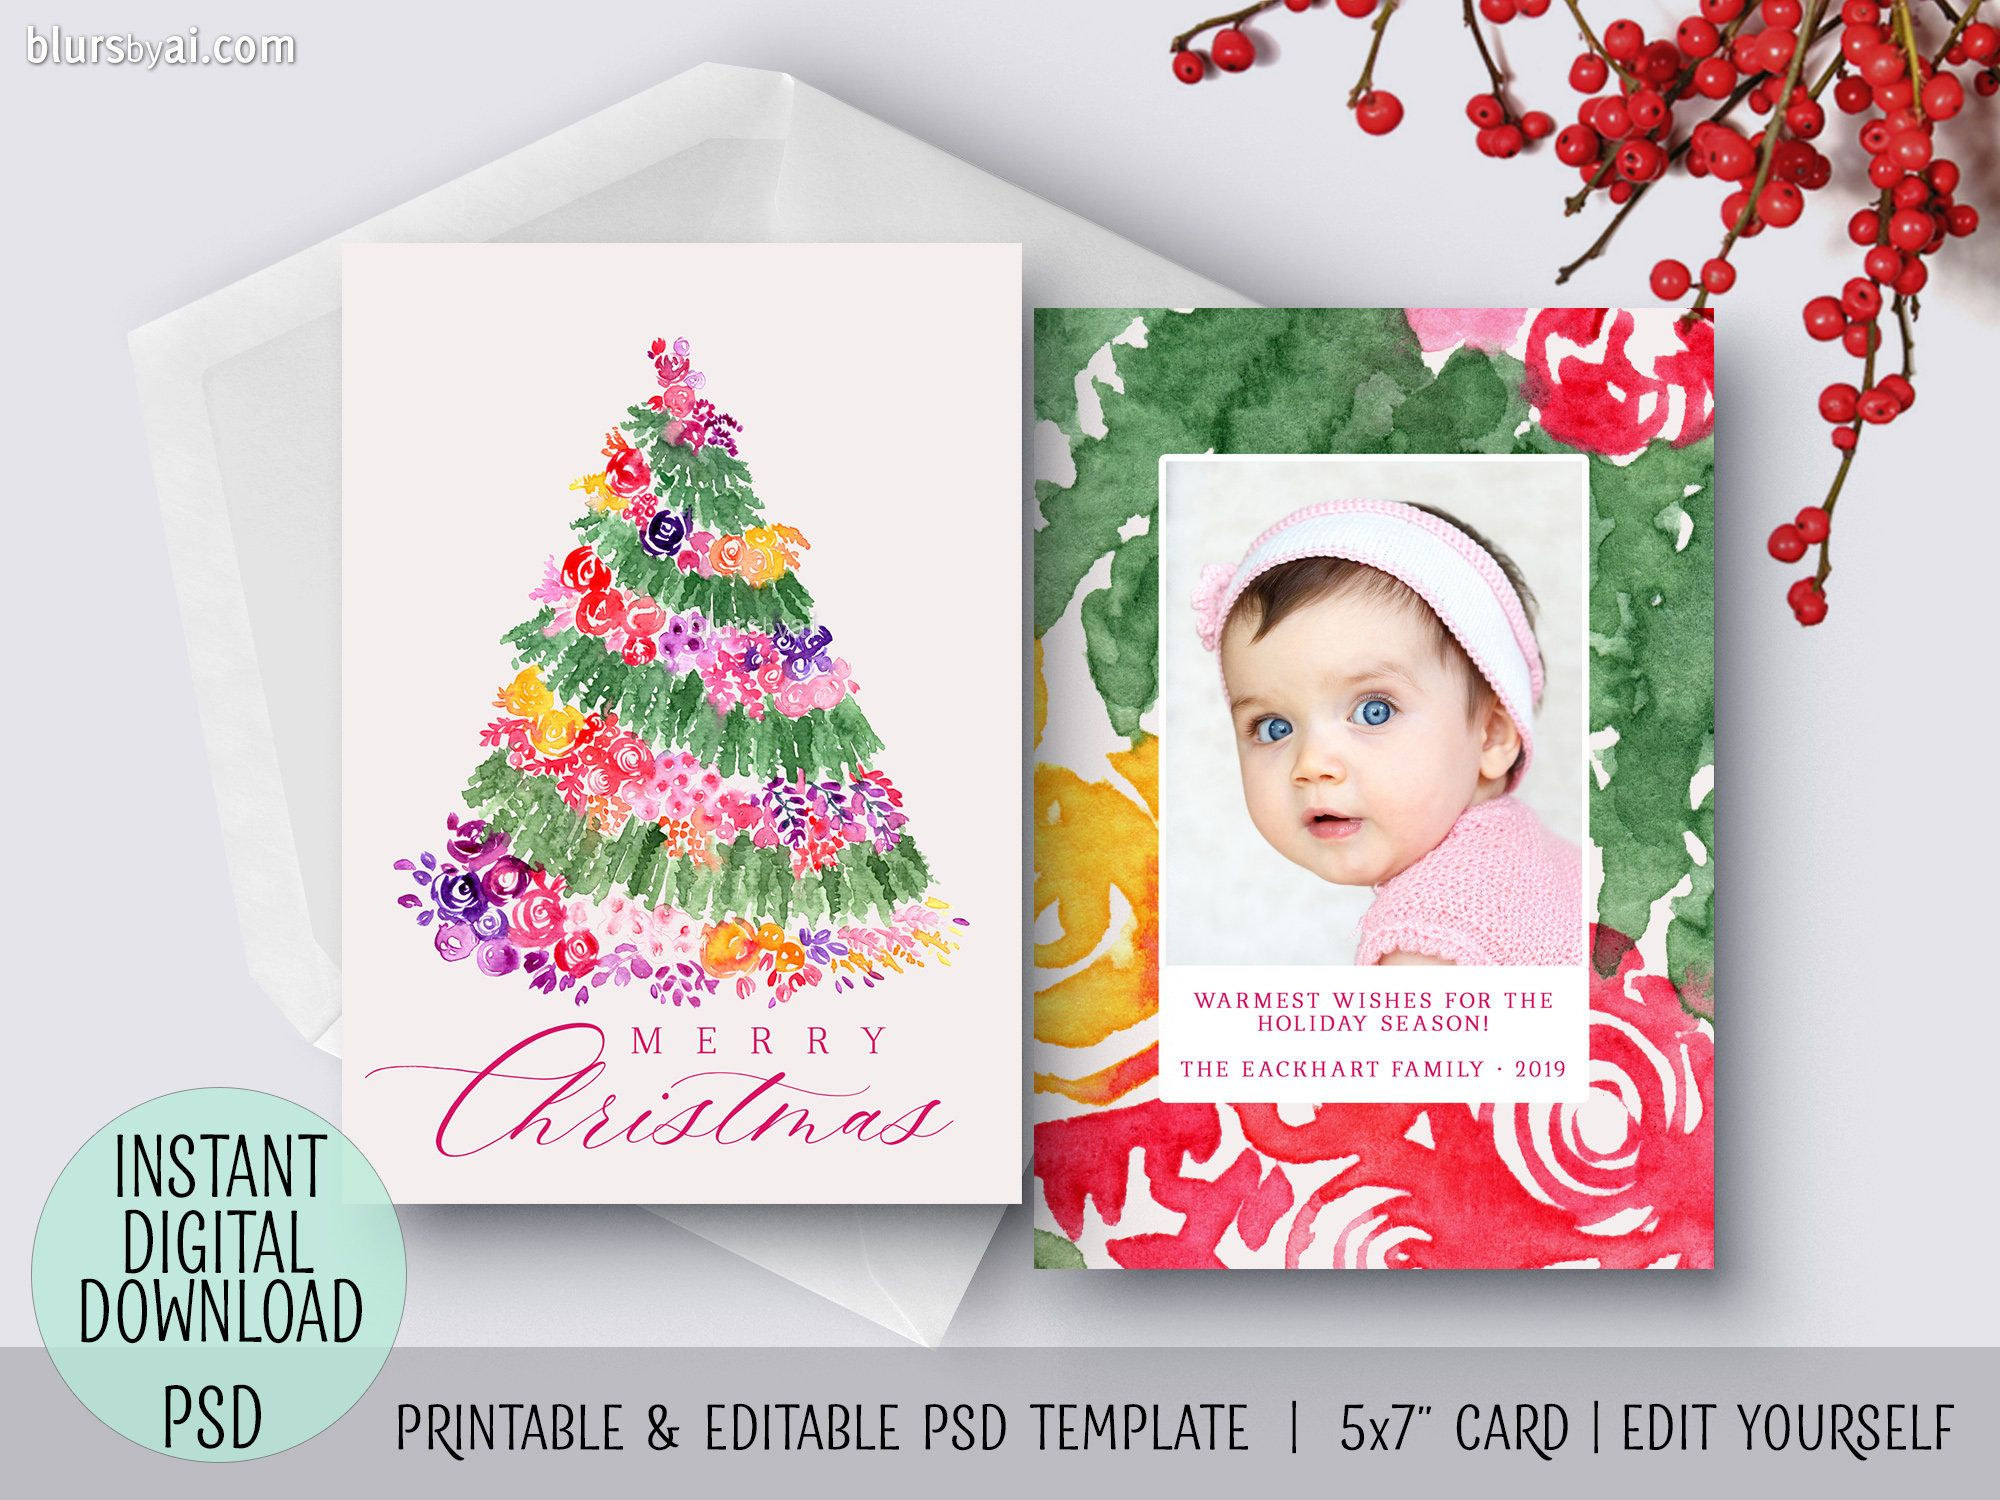 Christmas Card Template Psd Watercolor Christmas Photo Card Template Psd Template Christmas Card Template Christmas Photo Card Template Floral Christmas Tree